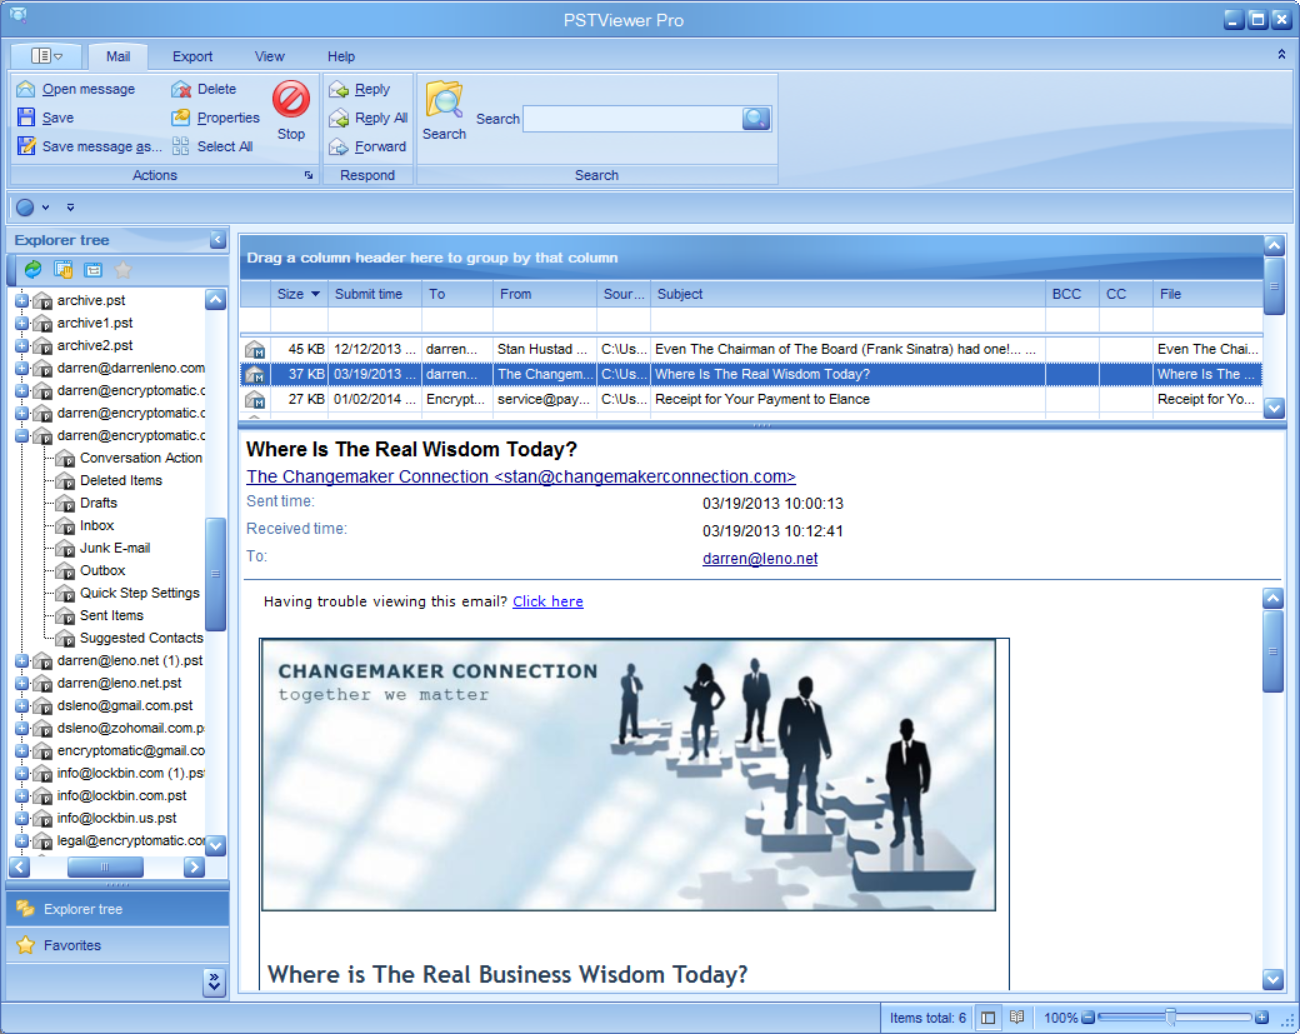 Outlook email viewer, PStViewer Pro, is used for seaching emails in .pst, .msg, and .ost and .eml files.